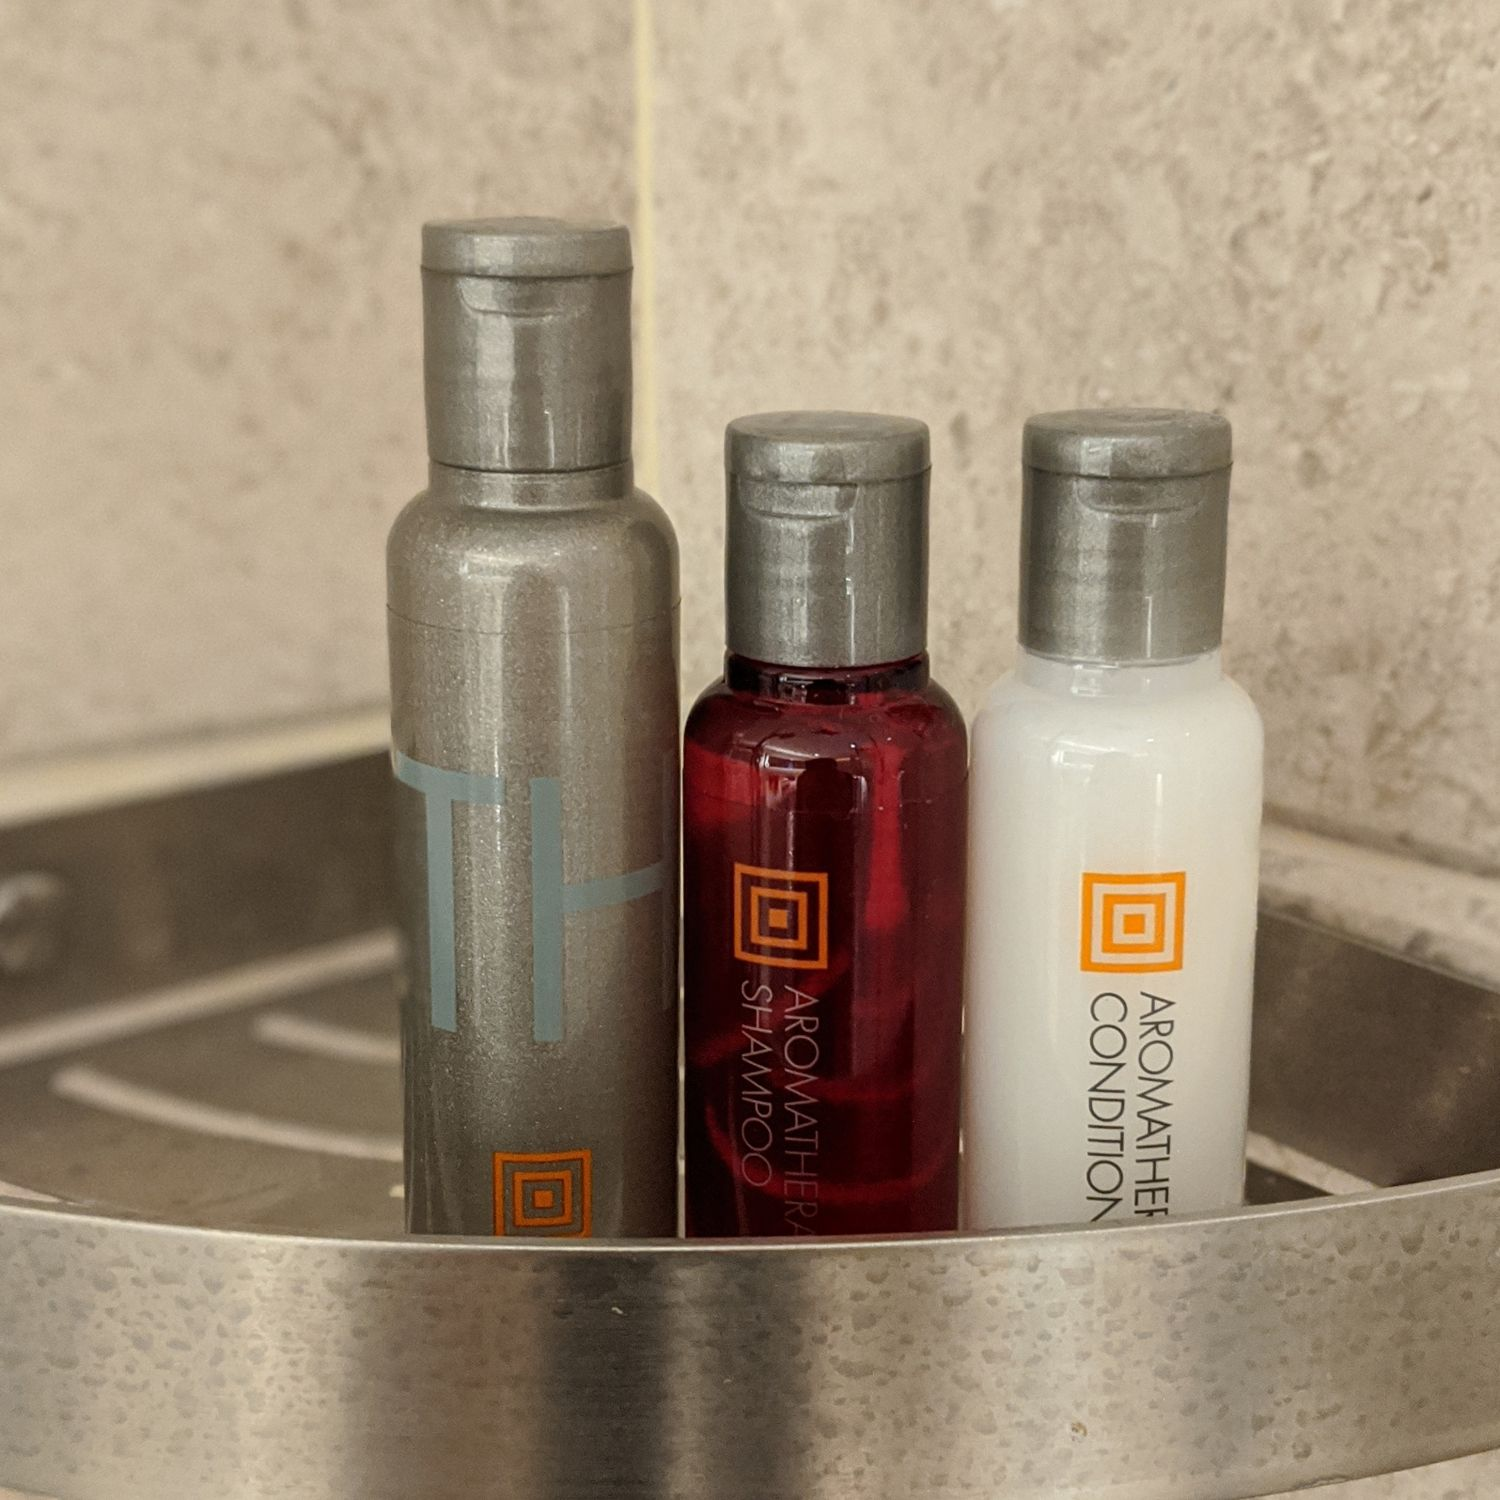 singapore marriott tang plaza hotel executive premier room bathroom bathroom amenities